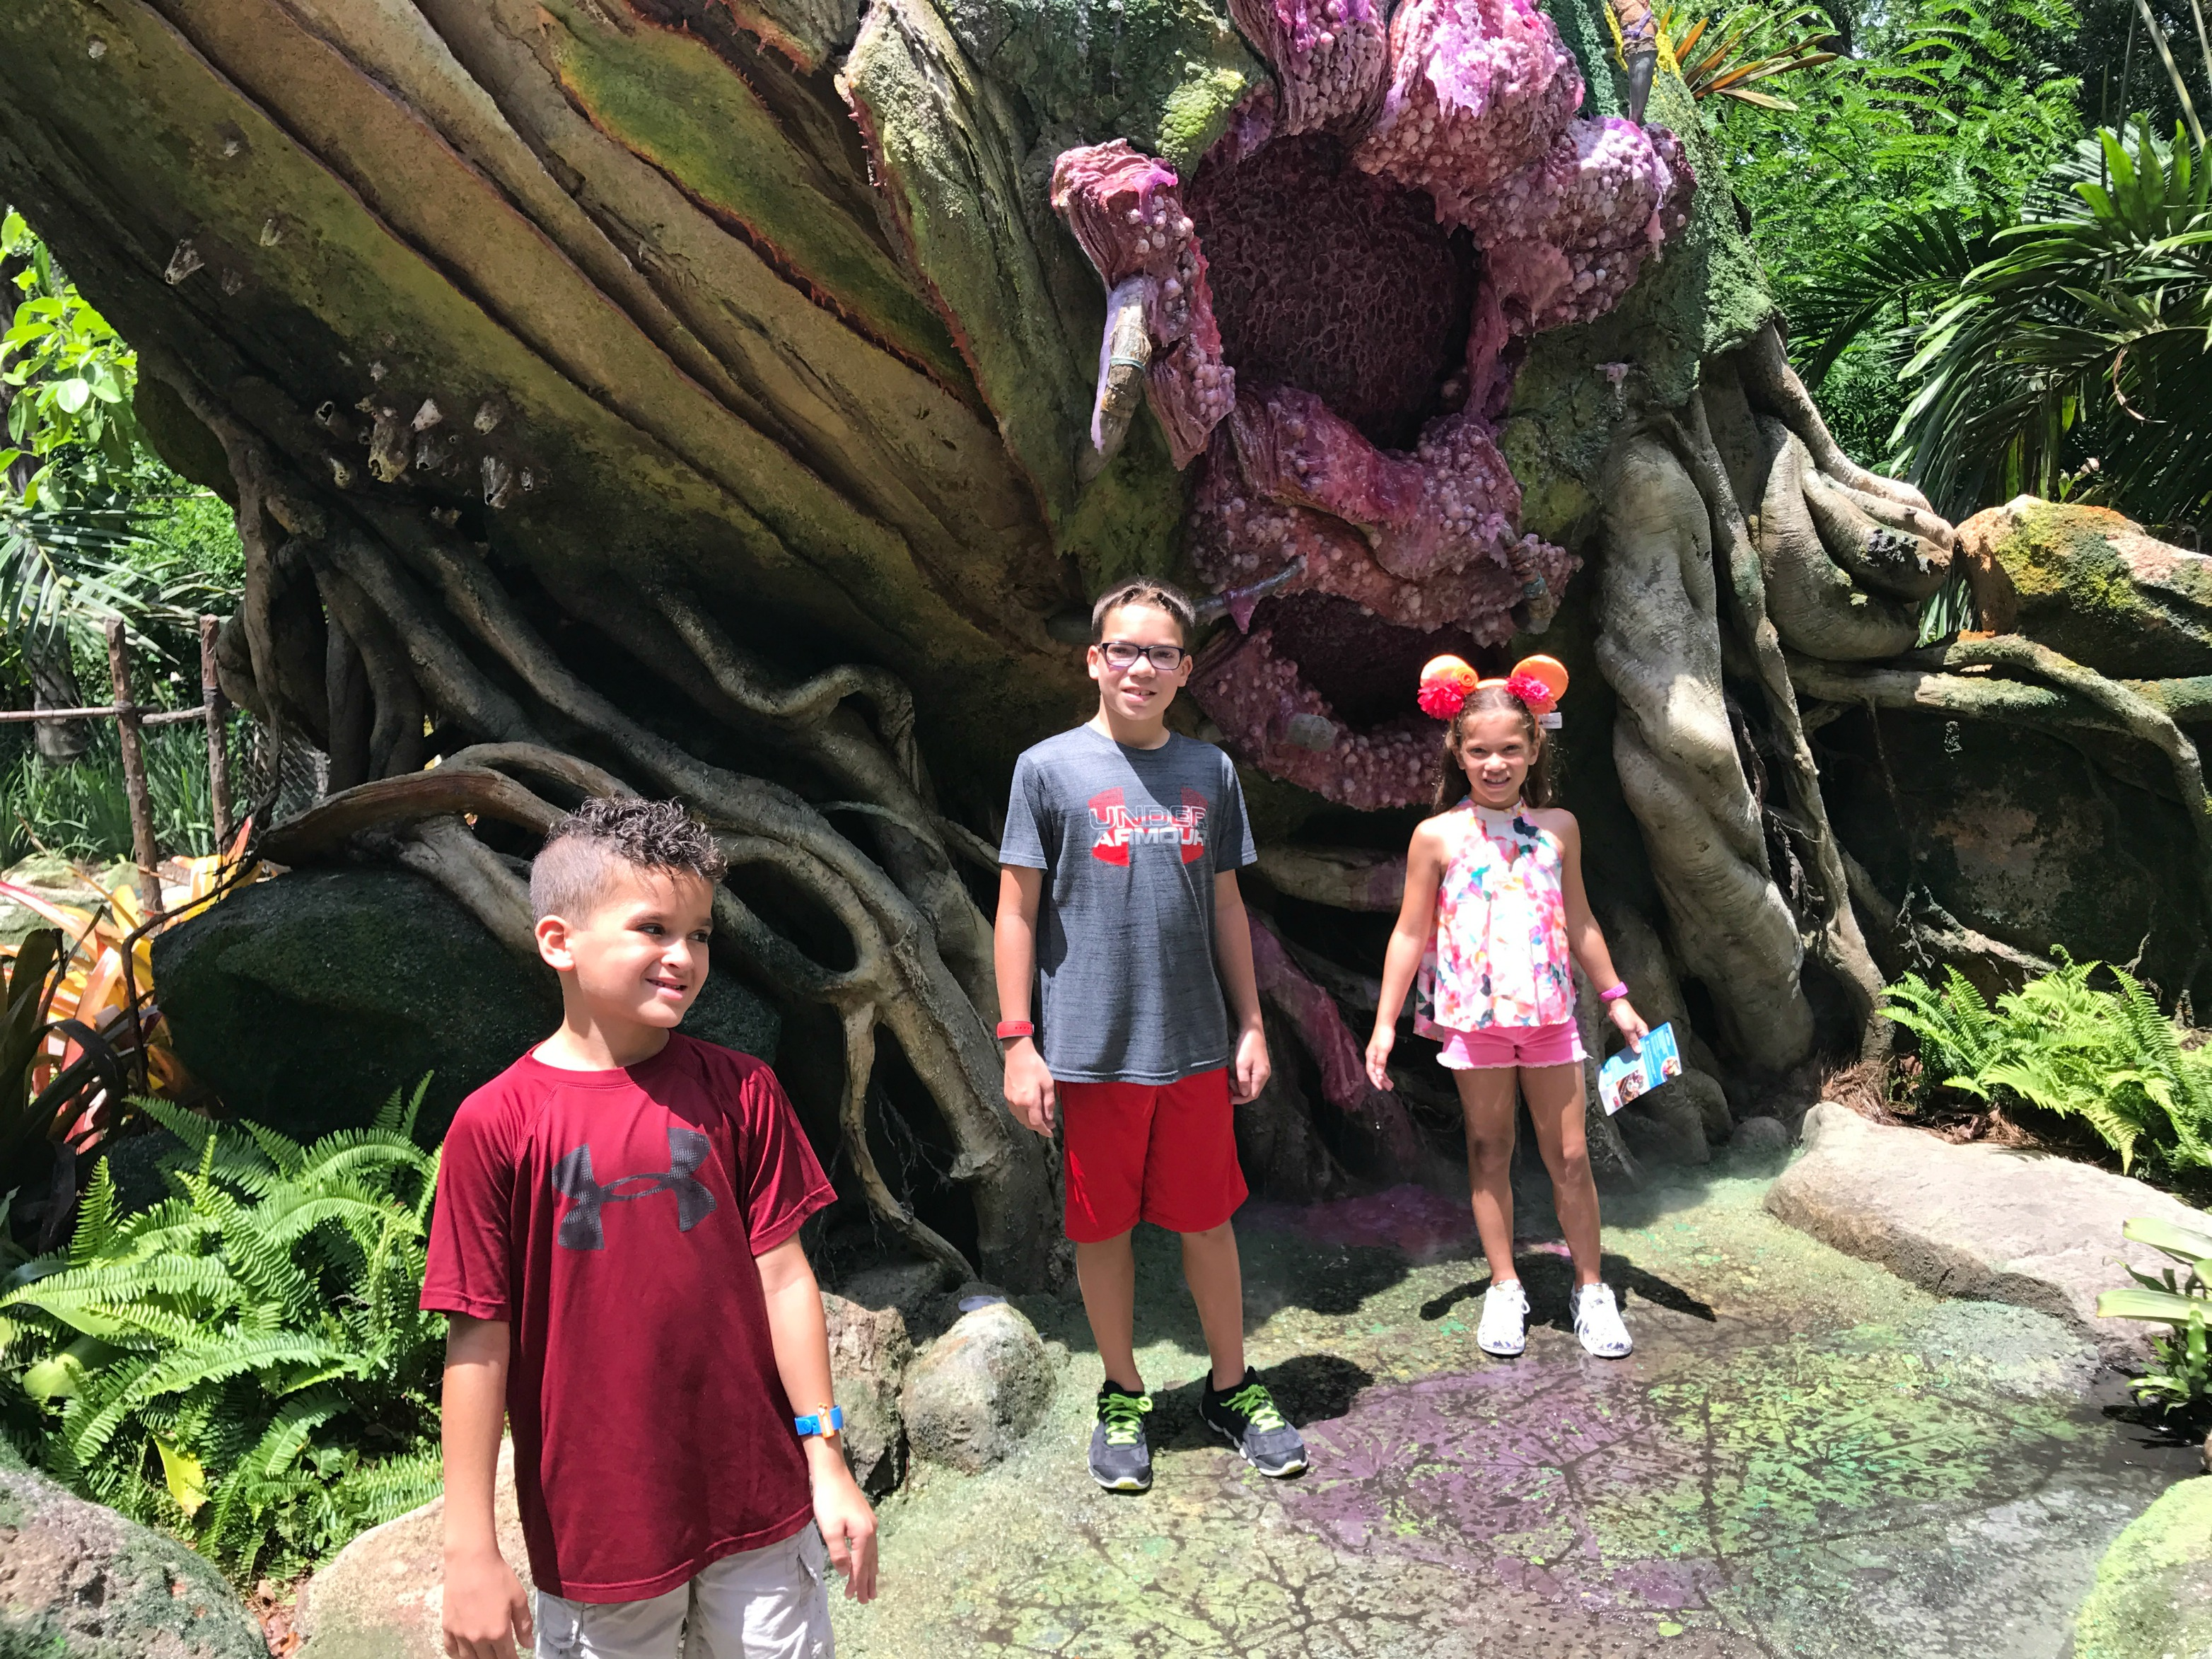 Tips for Visiting Disney's Pandora world of avatar